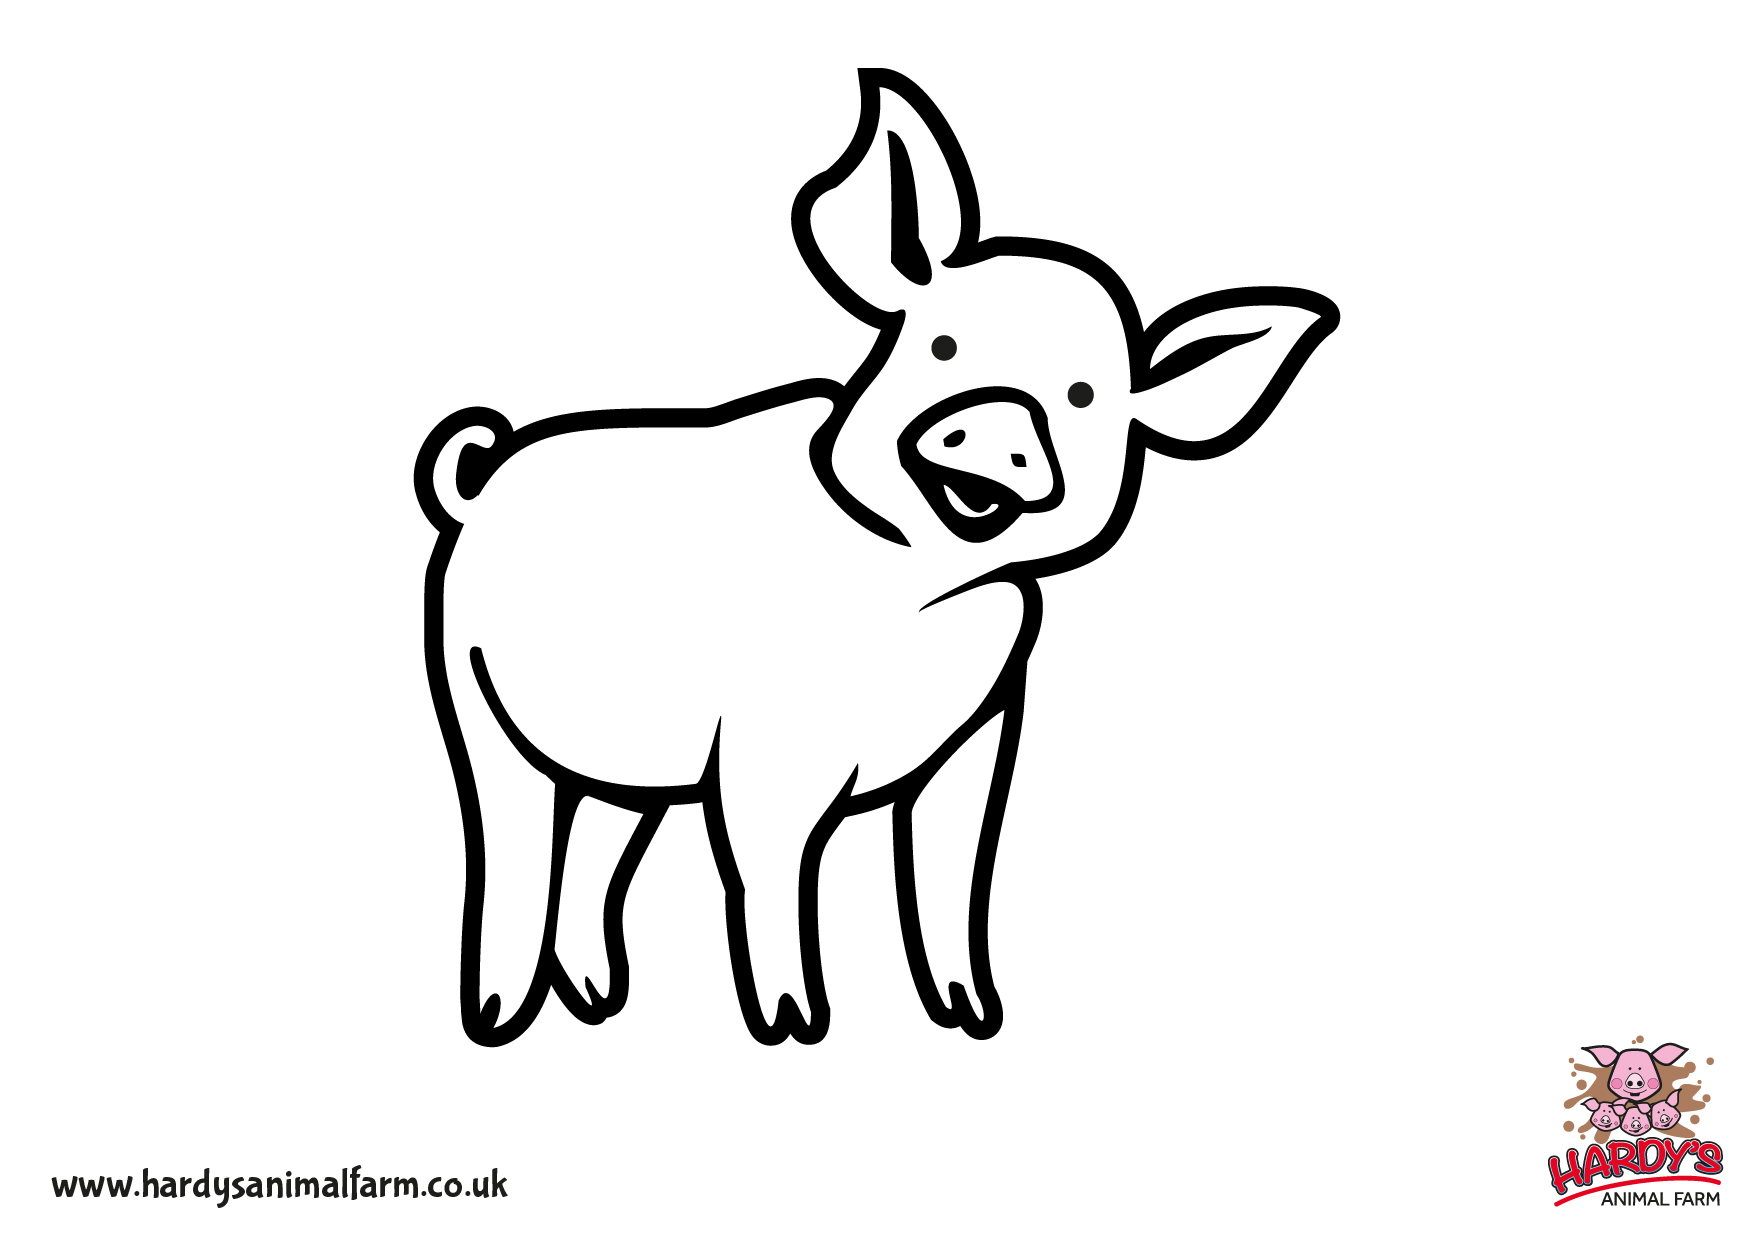 Childrens animal colouring pages - Colour In Your Favourite Animals From Hardys Animal Farm With These Free Pages To Download And Print